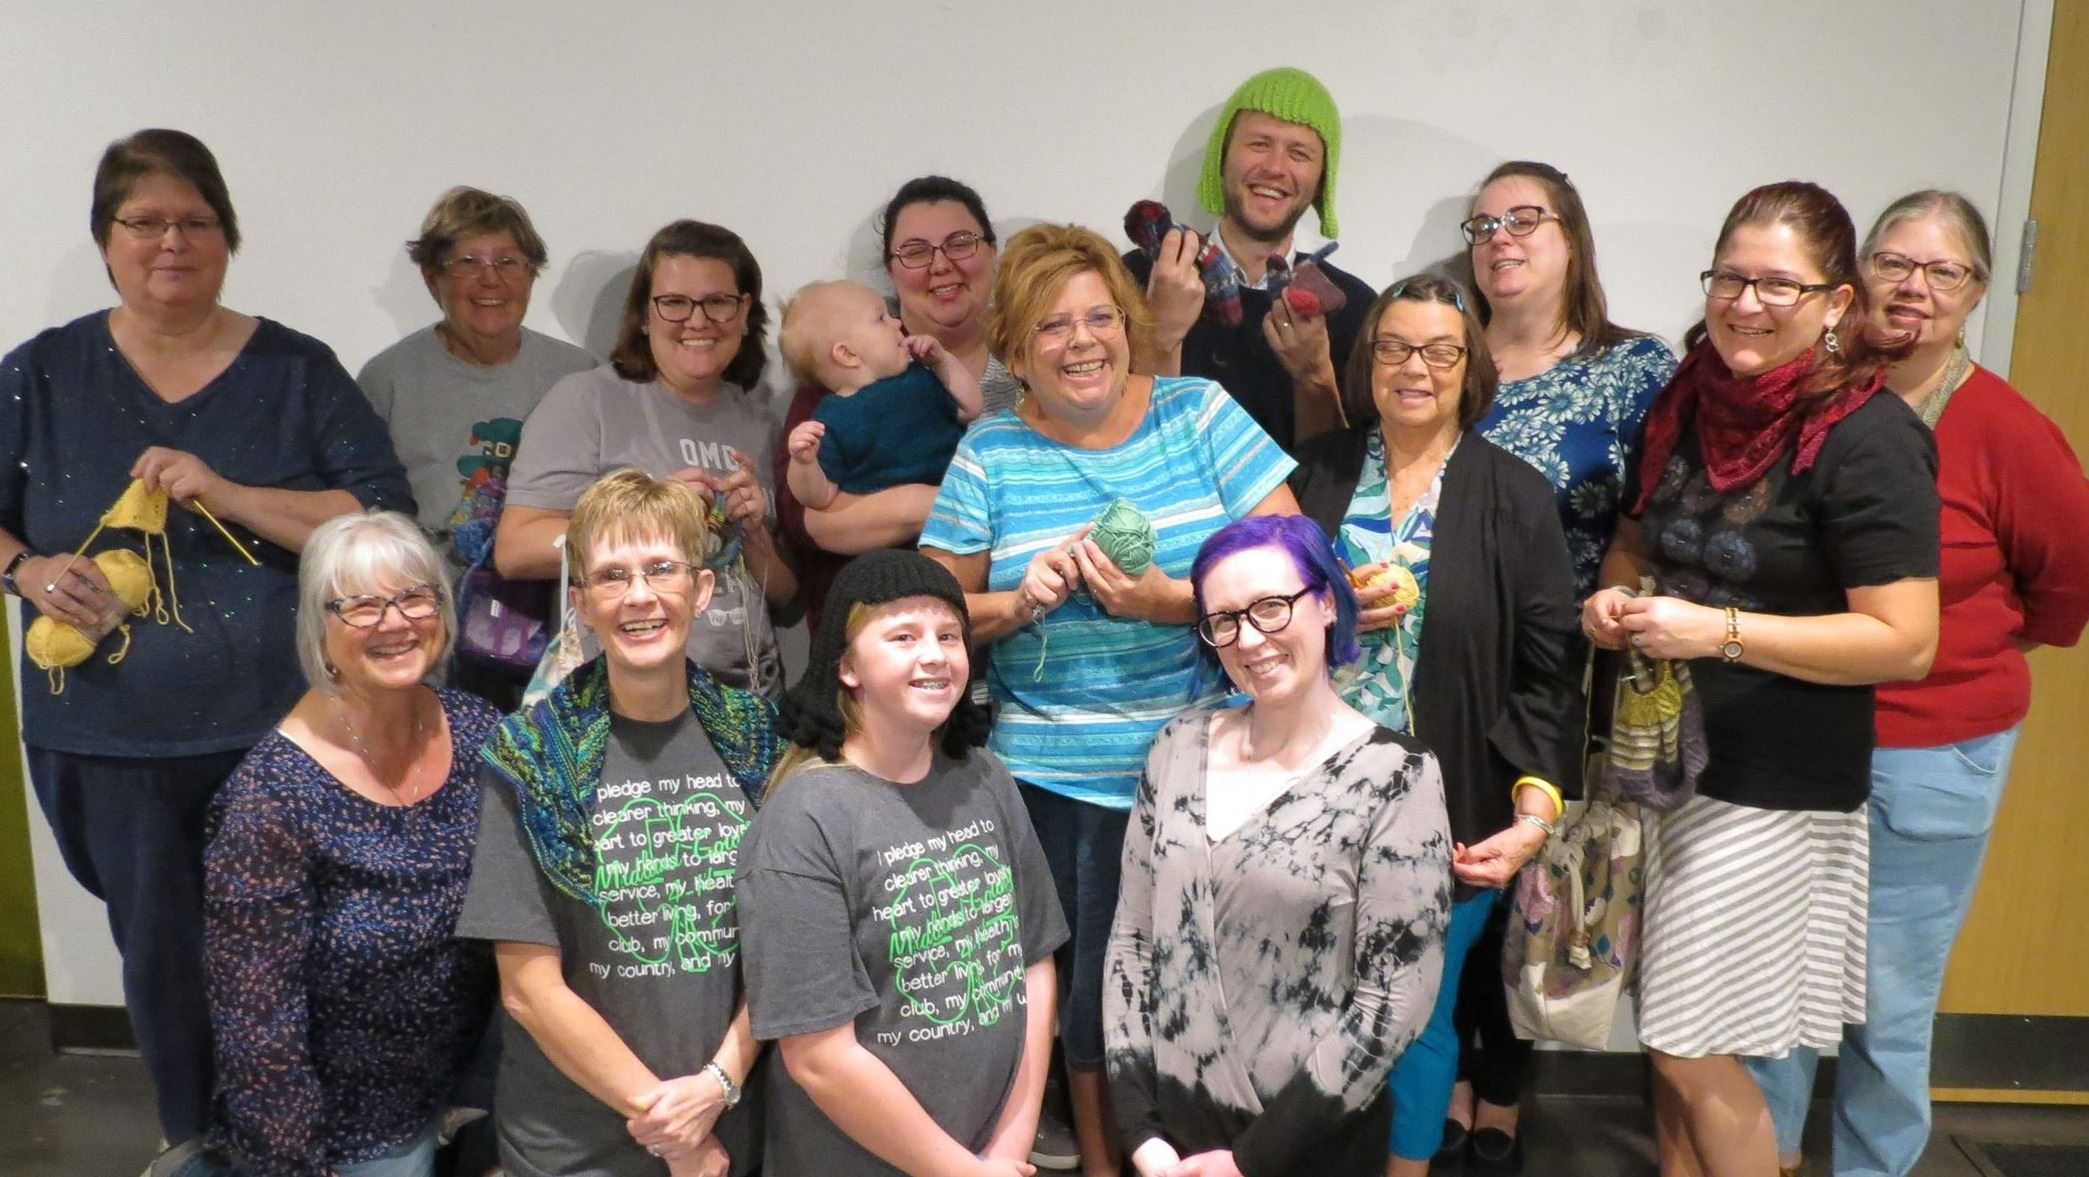 Group Photo of knitting Group